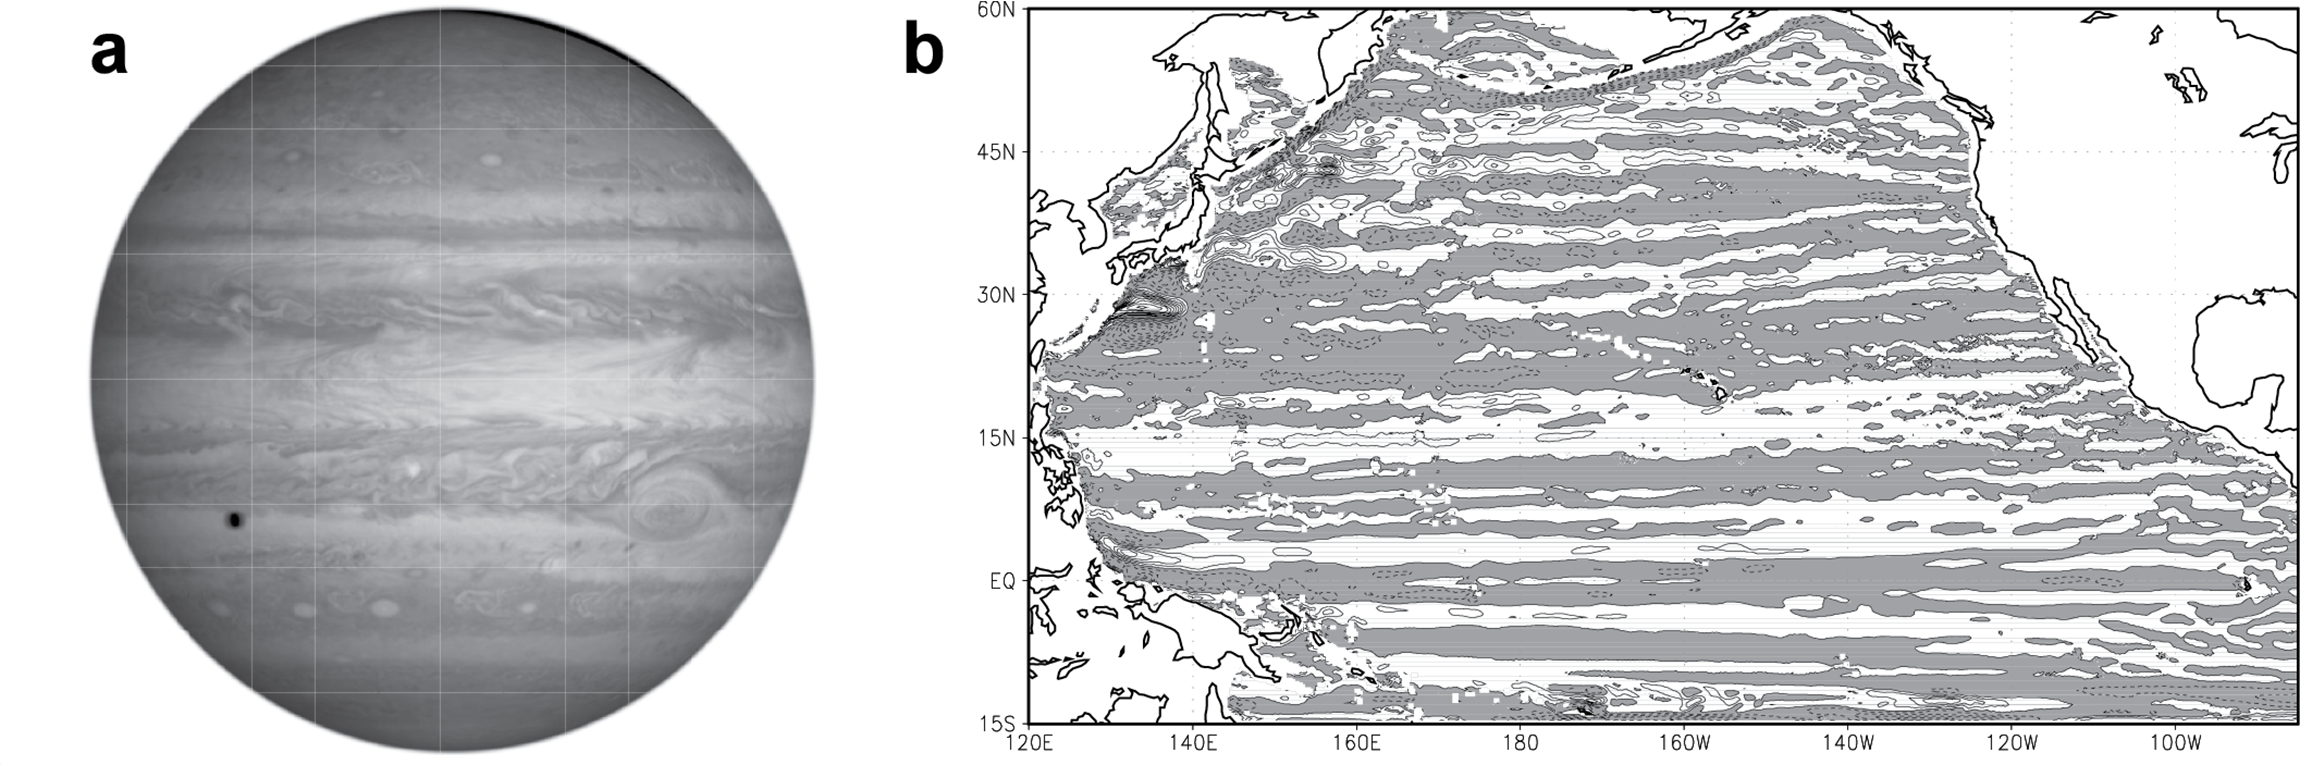 Twins: Jupiter's atmosphere and Earth's ocean? See how the composite view of the banded structure of the disk of Jupiter (a) looks similar to the zonal jets at 1000 m depth in the North Pacific Ocean (b). The North Pacific zonal jets were averaged over five years of a 58-year-long computer simulation performed by Galperin and his team, which they published in 2004 in Geophysical Research Letters [https://www.researchgate.net/publication/228797484]. The Jupiter image was taken by NASA's Cassini spacecraft on December 7, 2000 (credit: NASA/JPL/University of Arizona)